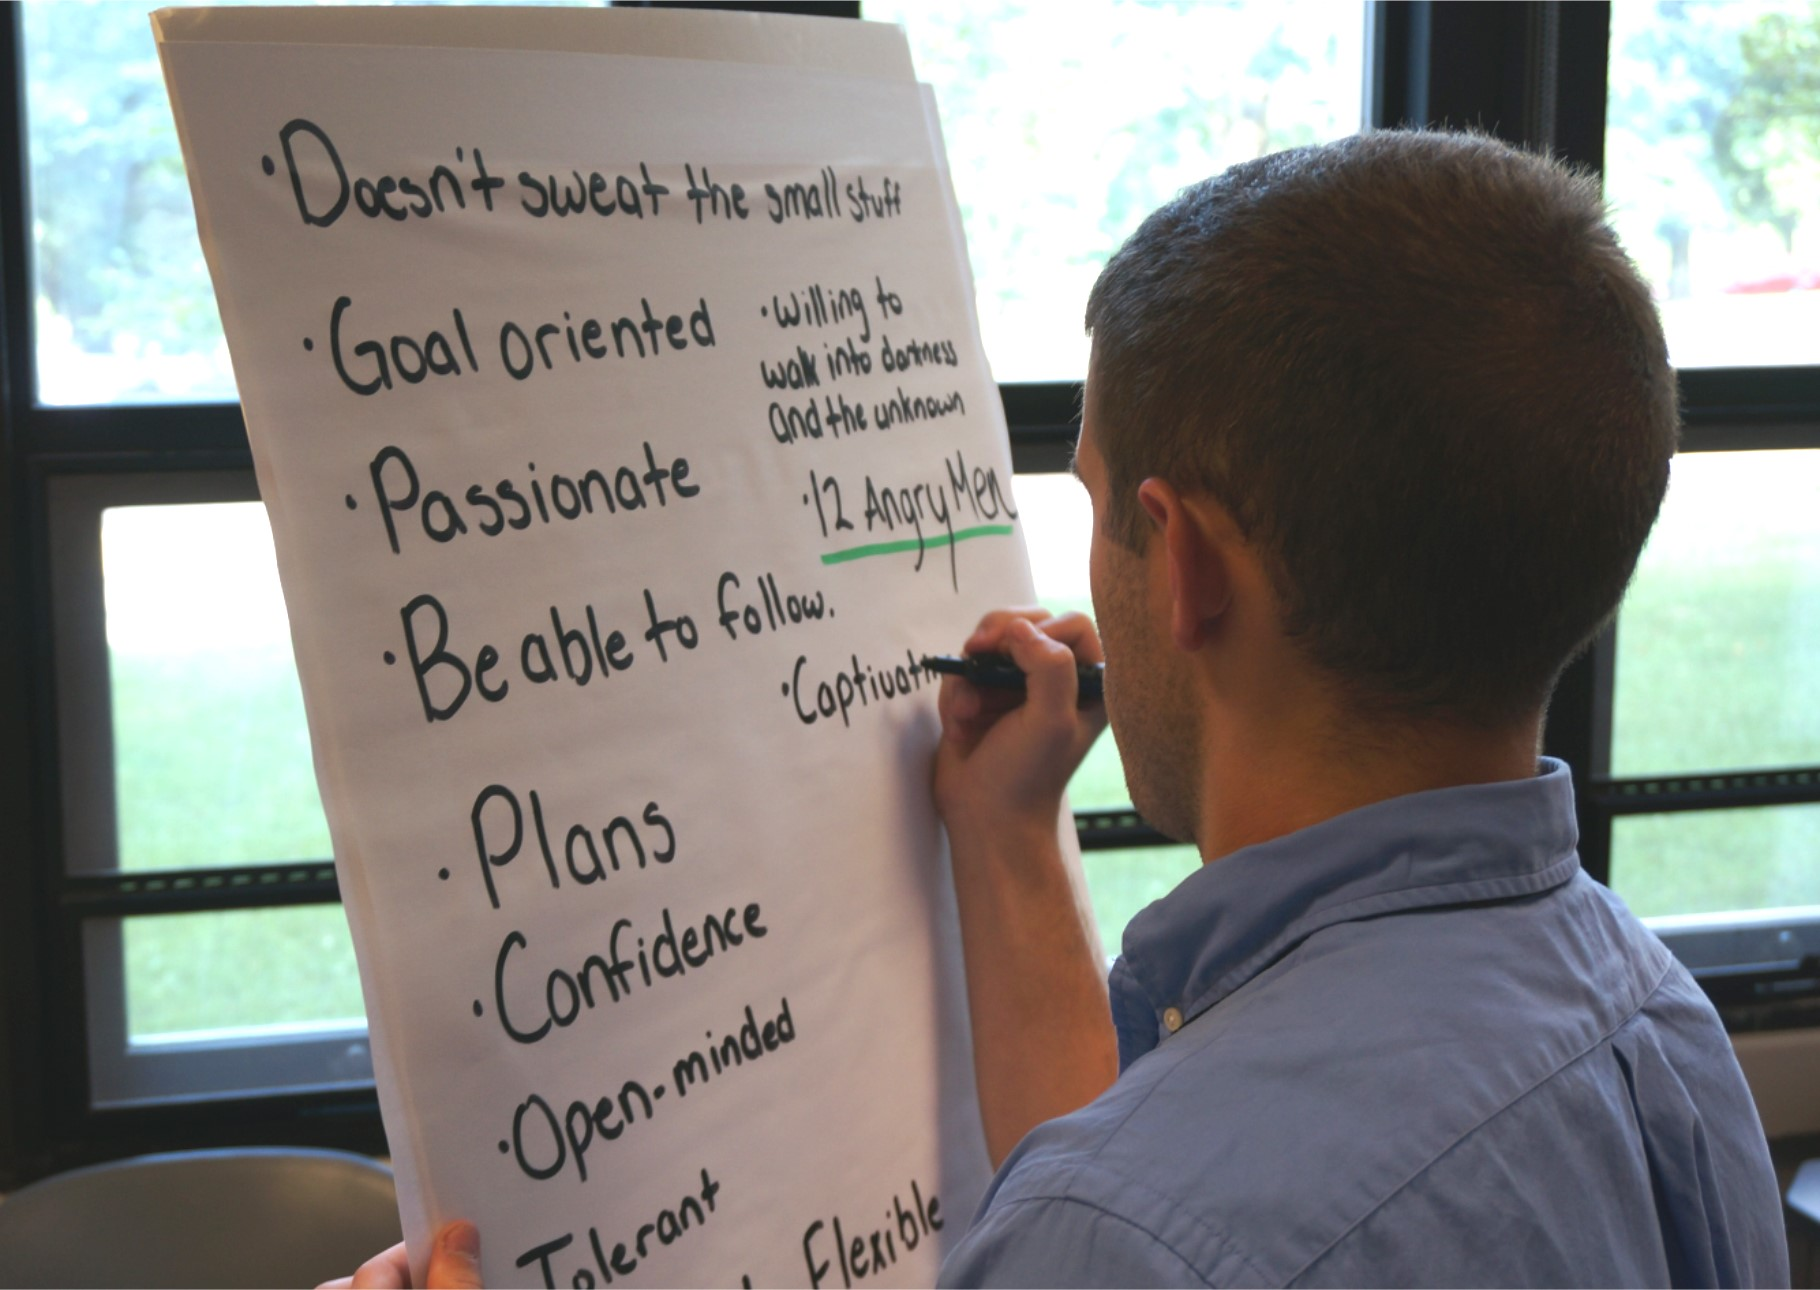 Austin Sears, of Manassas, Va., works on a leadership attributes exercise during a Pamplin program on campus this summer.